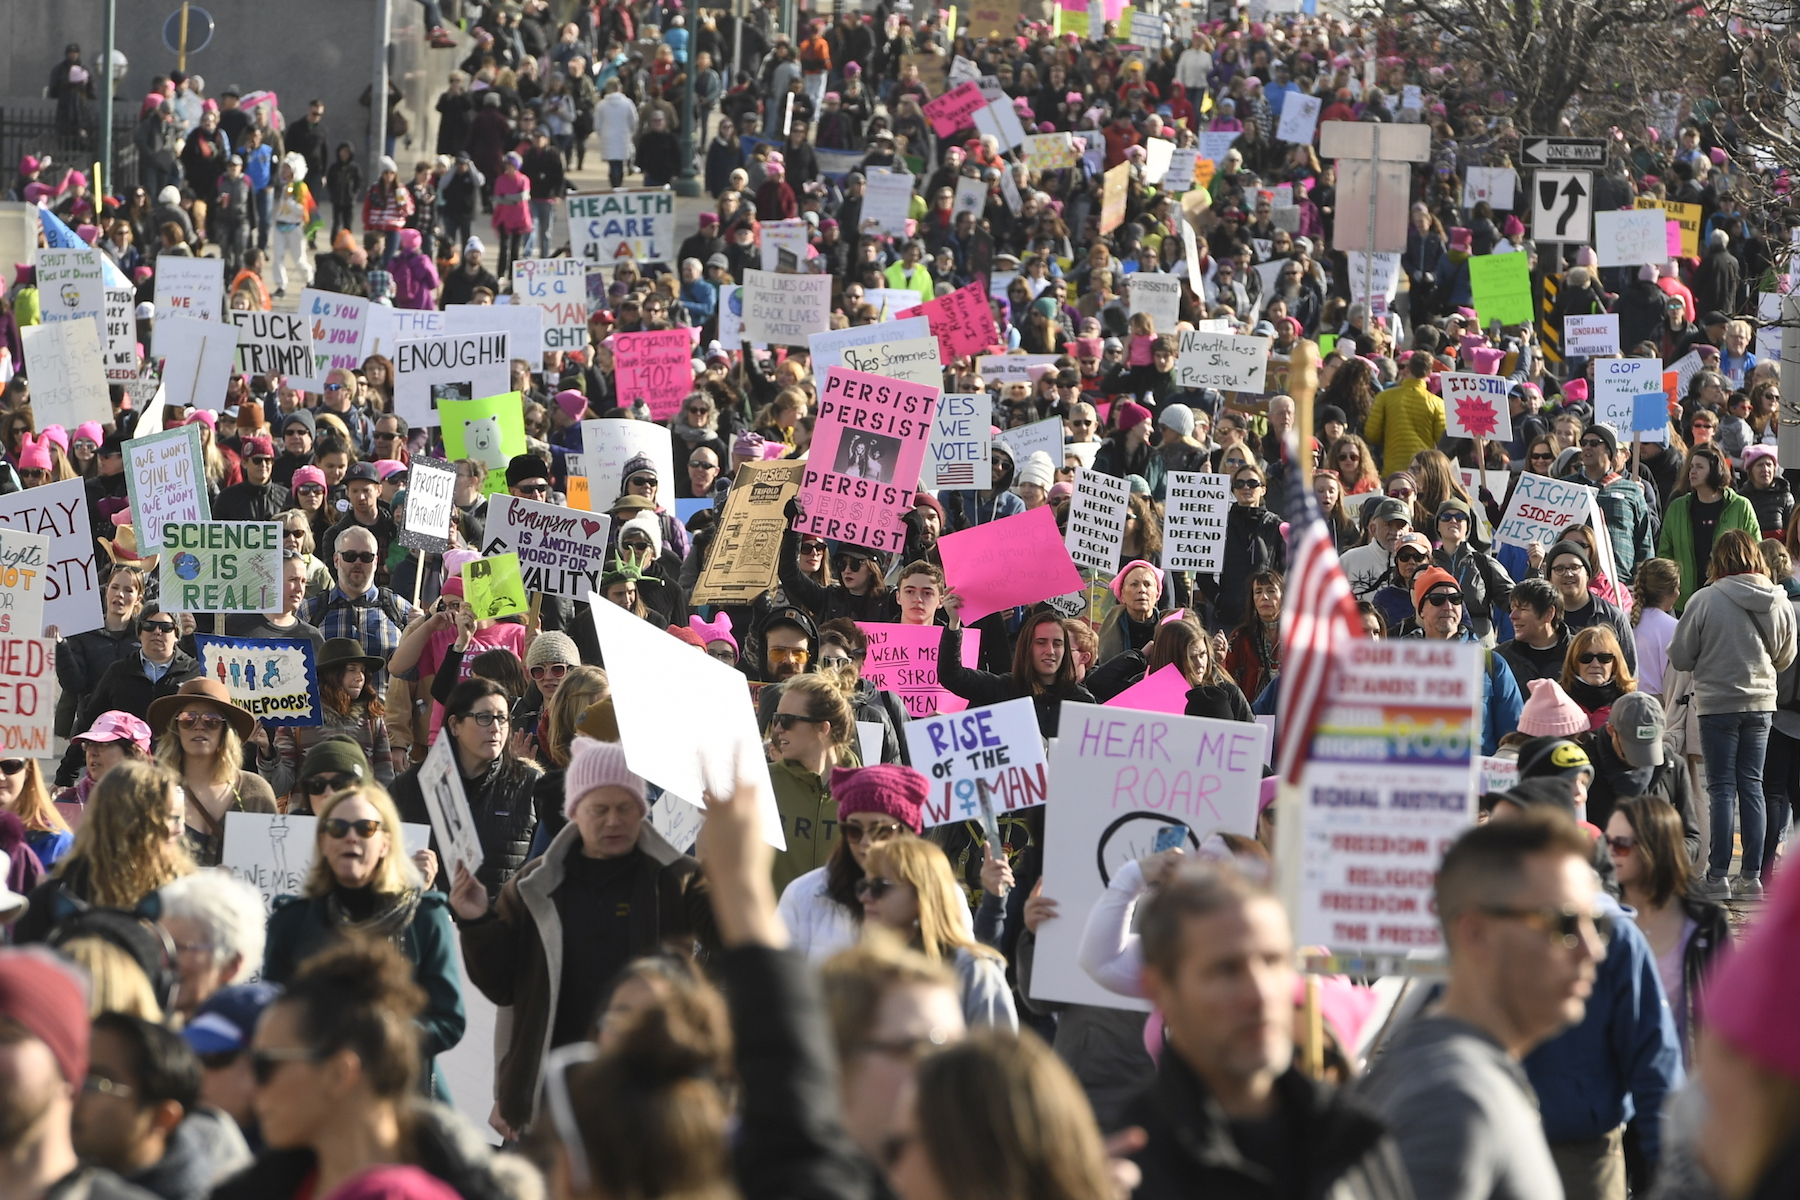 <div class='meta'><div class='origin-logo' data-origin='none'></div><span class='caption-text' data-credit='Helen H. Richardson/The Denver Post via Getty Images'>Thousands of people attended the Denver Women's March on January 20, 2018 at Civic Center Park in Denver, Colorado.</span></div>